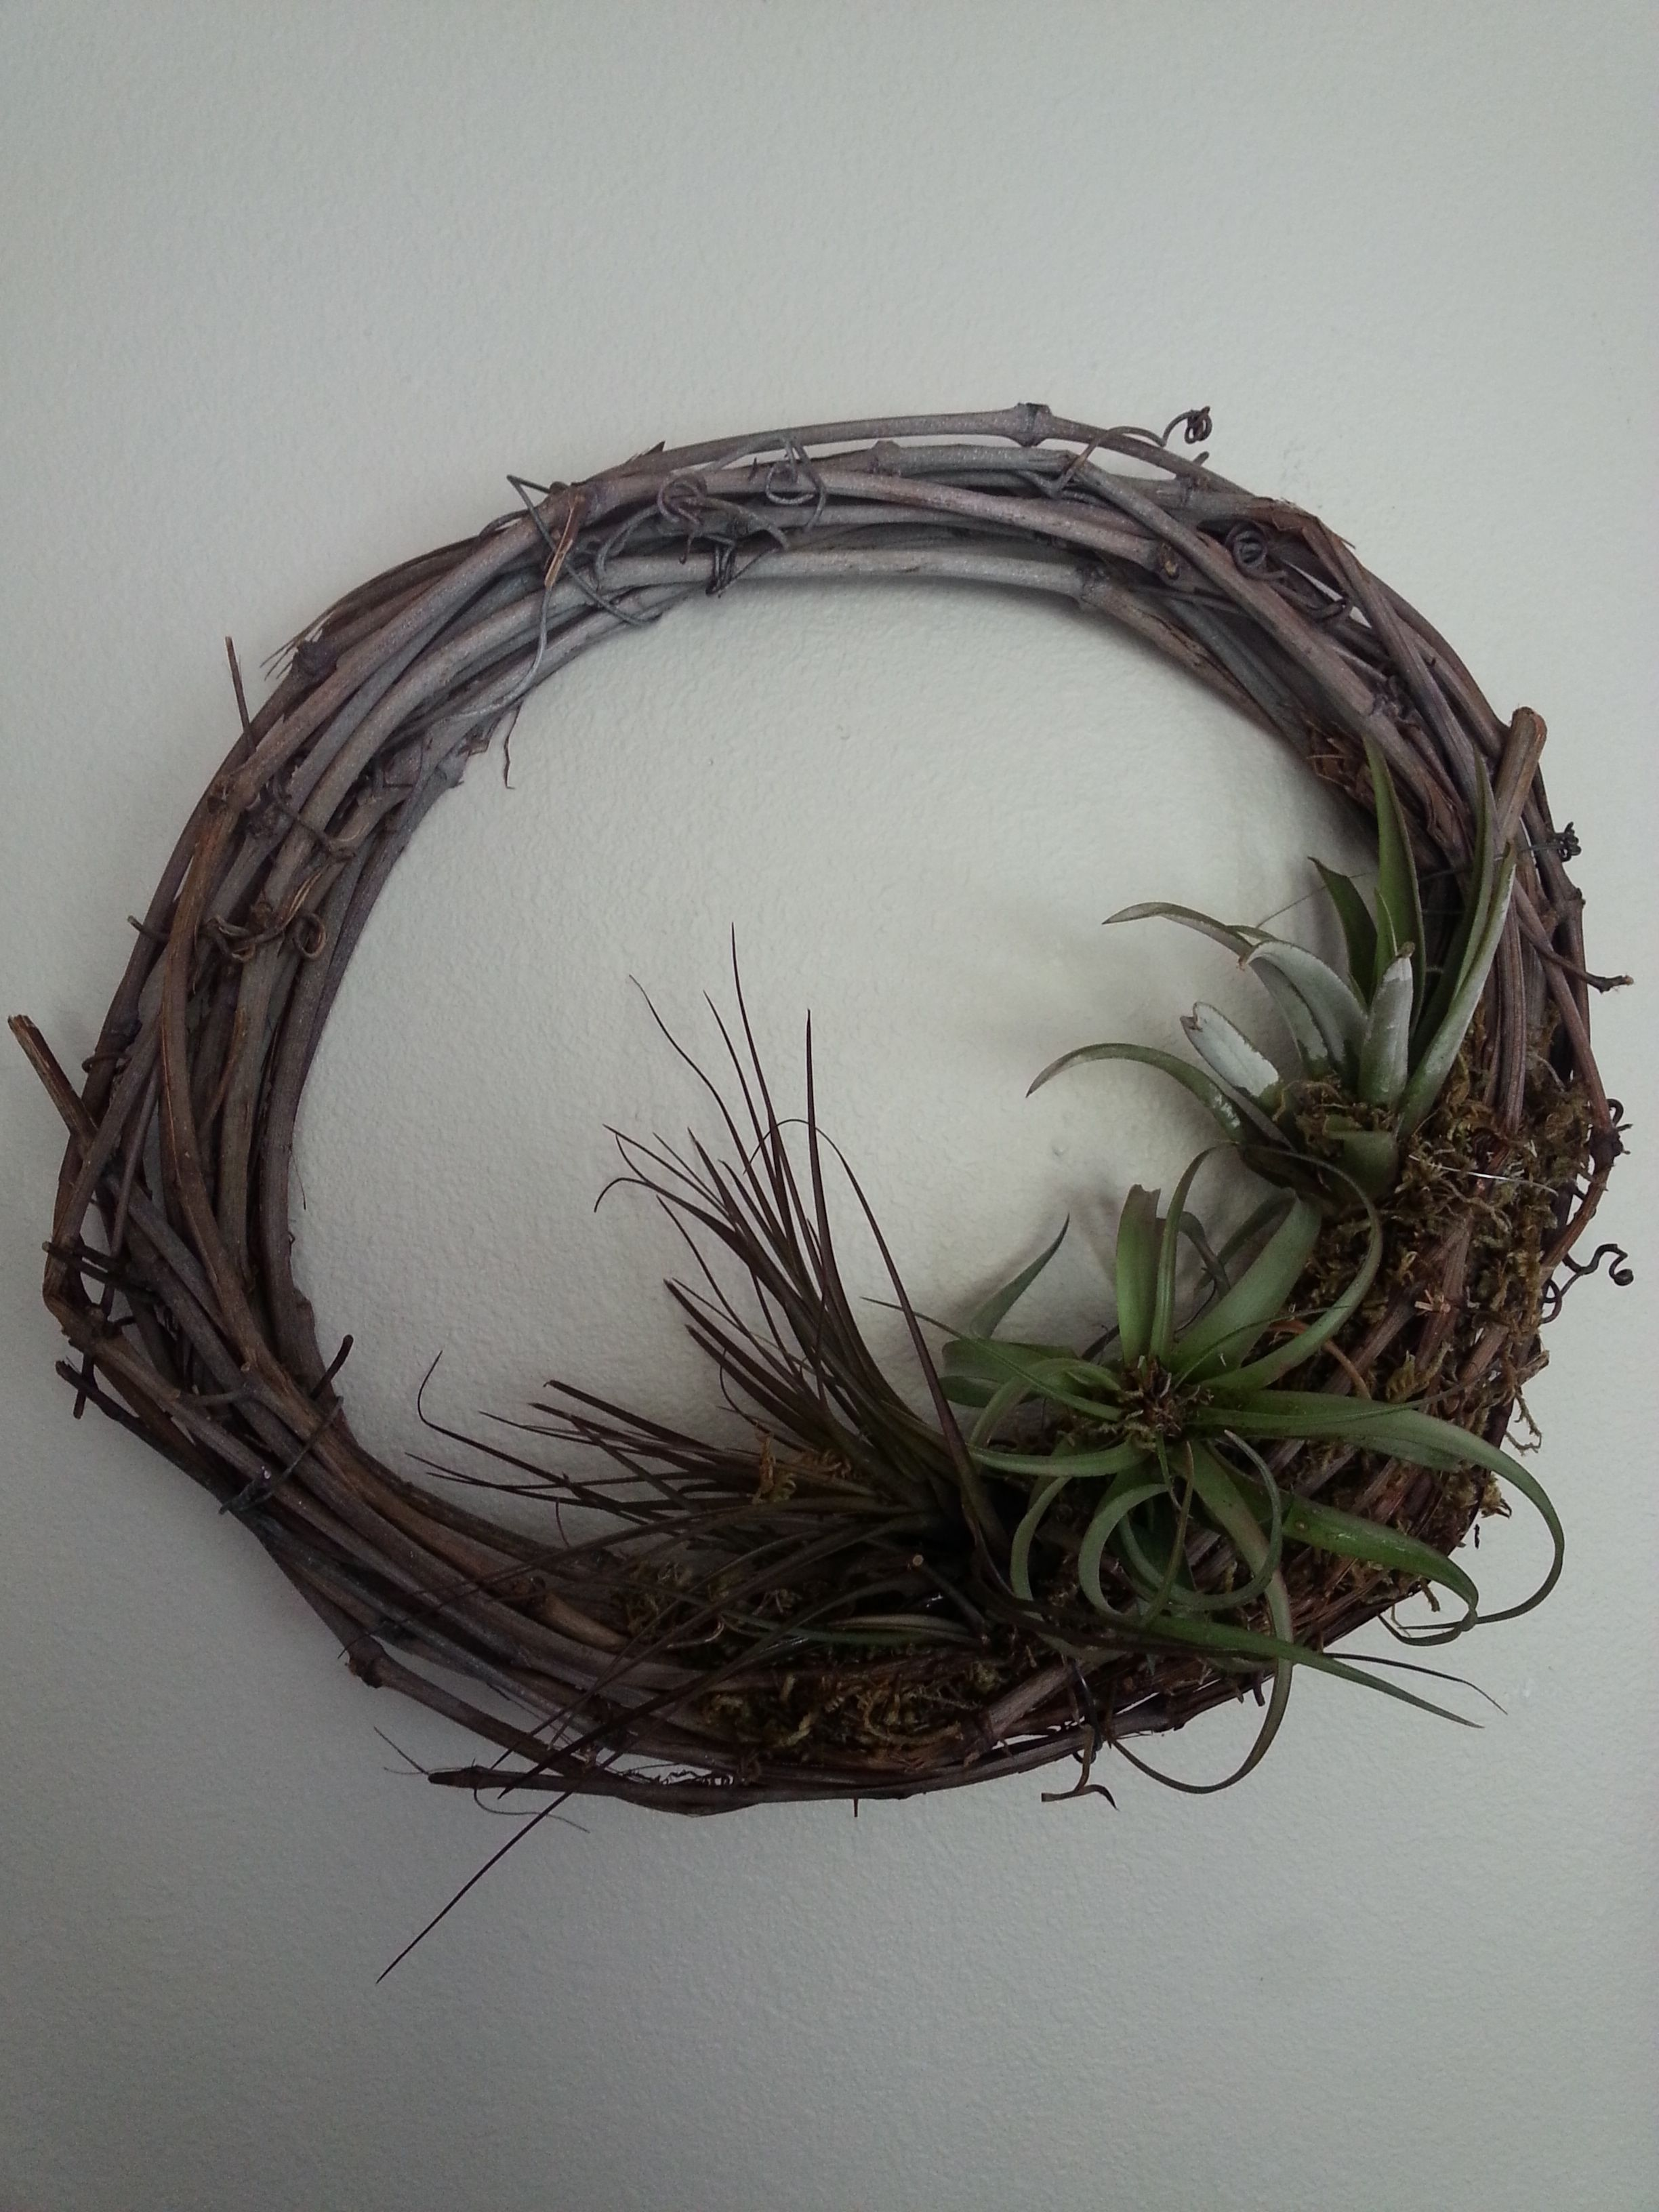 Twig wreath comes alive with three air plants embedded in moss attached with wire.  Just mist once a week.  So easy and FUN!